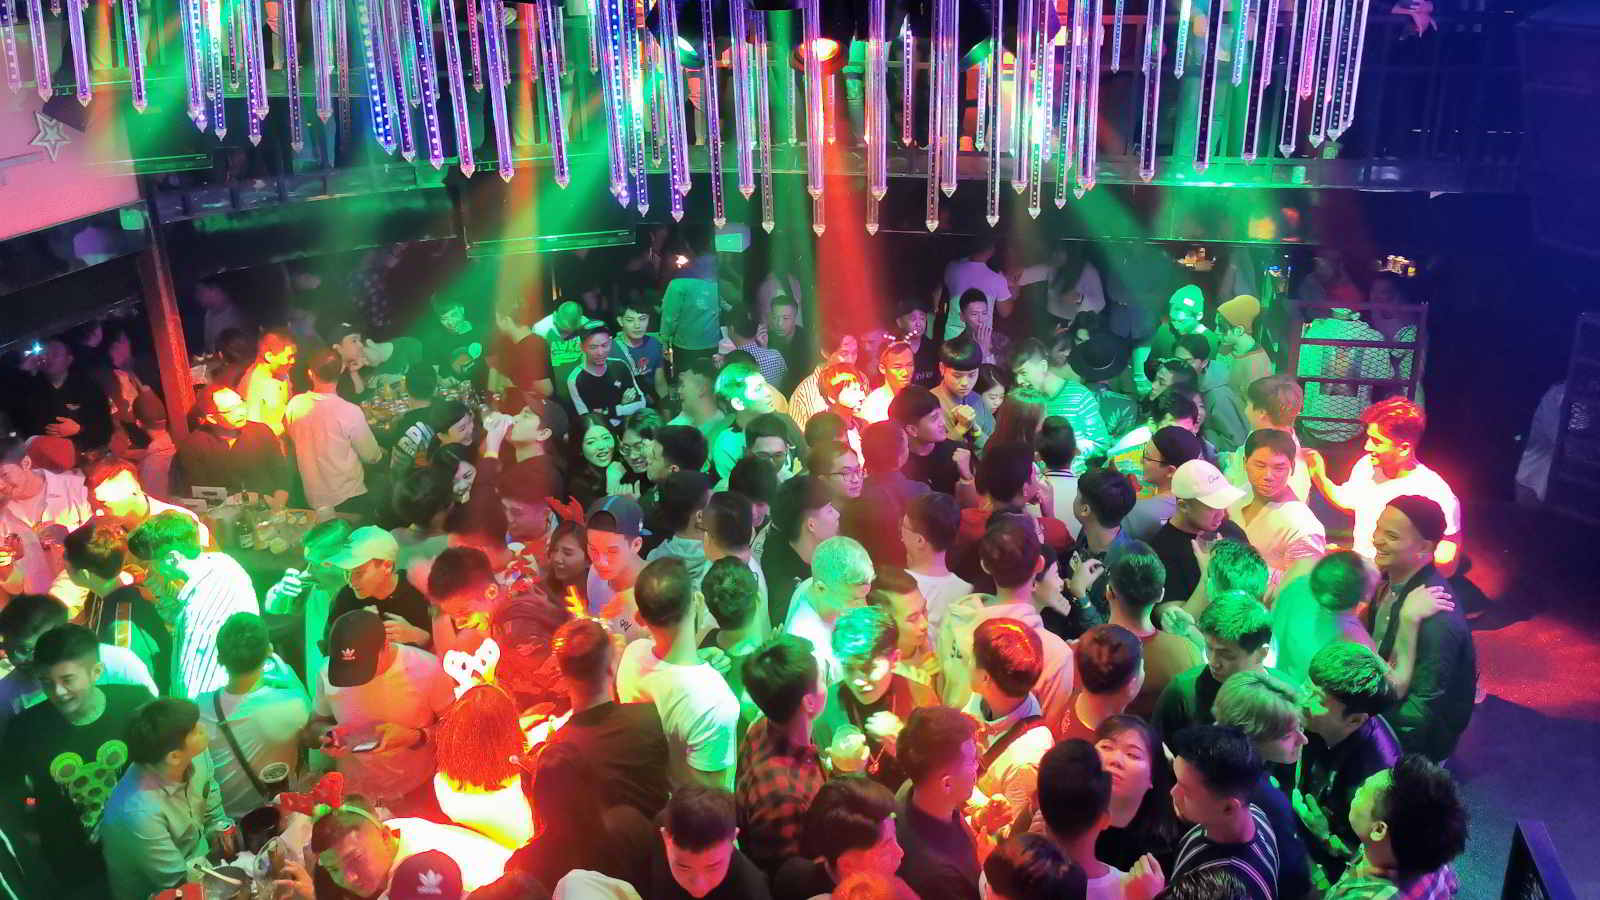 Bangkok's New Year's White Party is one of the biggest in the world and something you have to experience at least once!